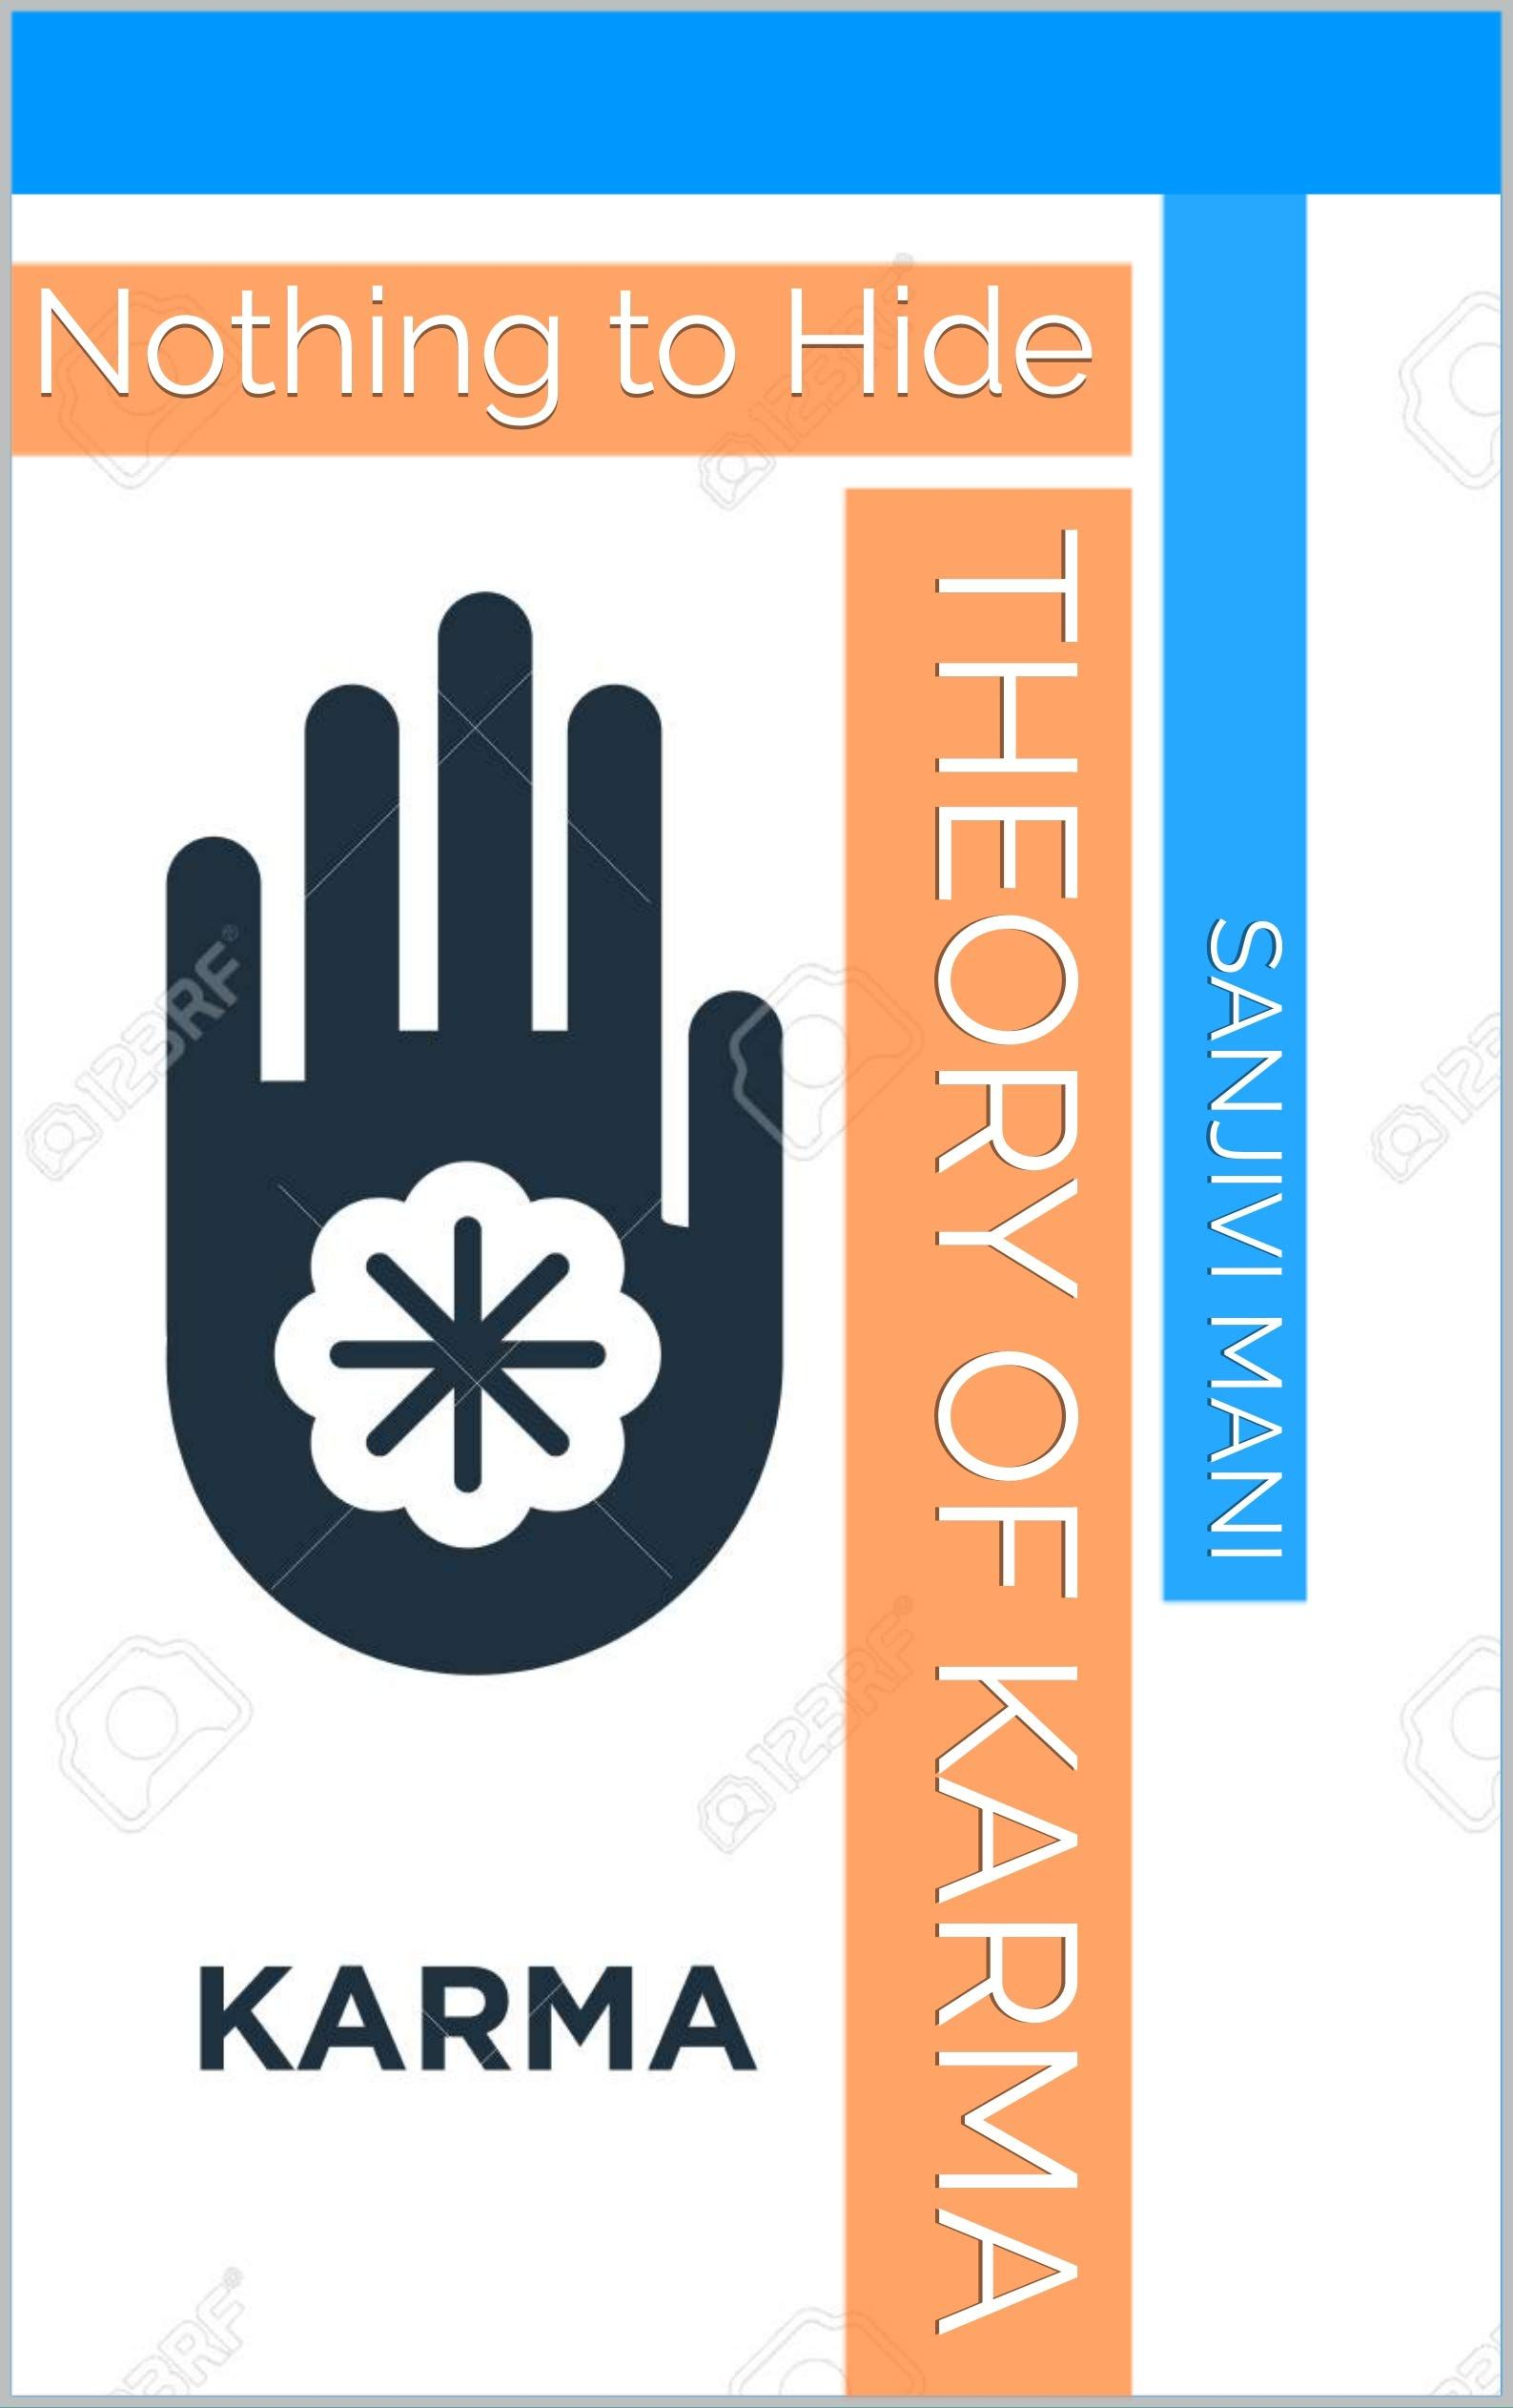 Theory Of Karma Nothing To Hide By Sanjivi Mani Online Reading Book Lover In 2020 Books To Read Online Karma Best Books To Read